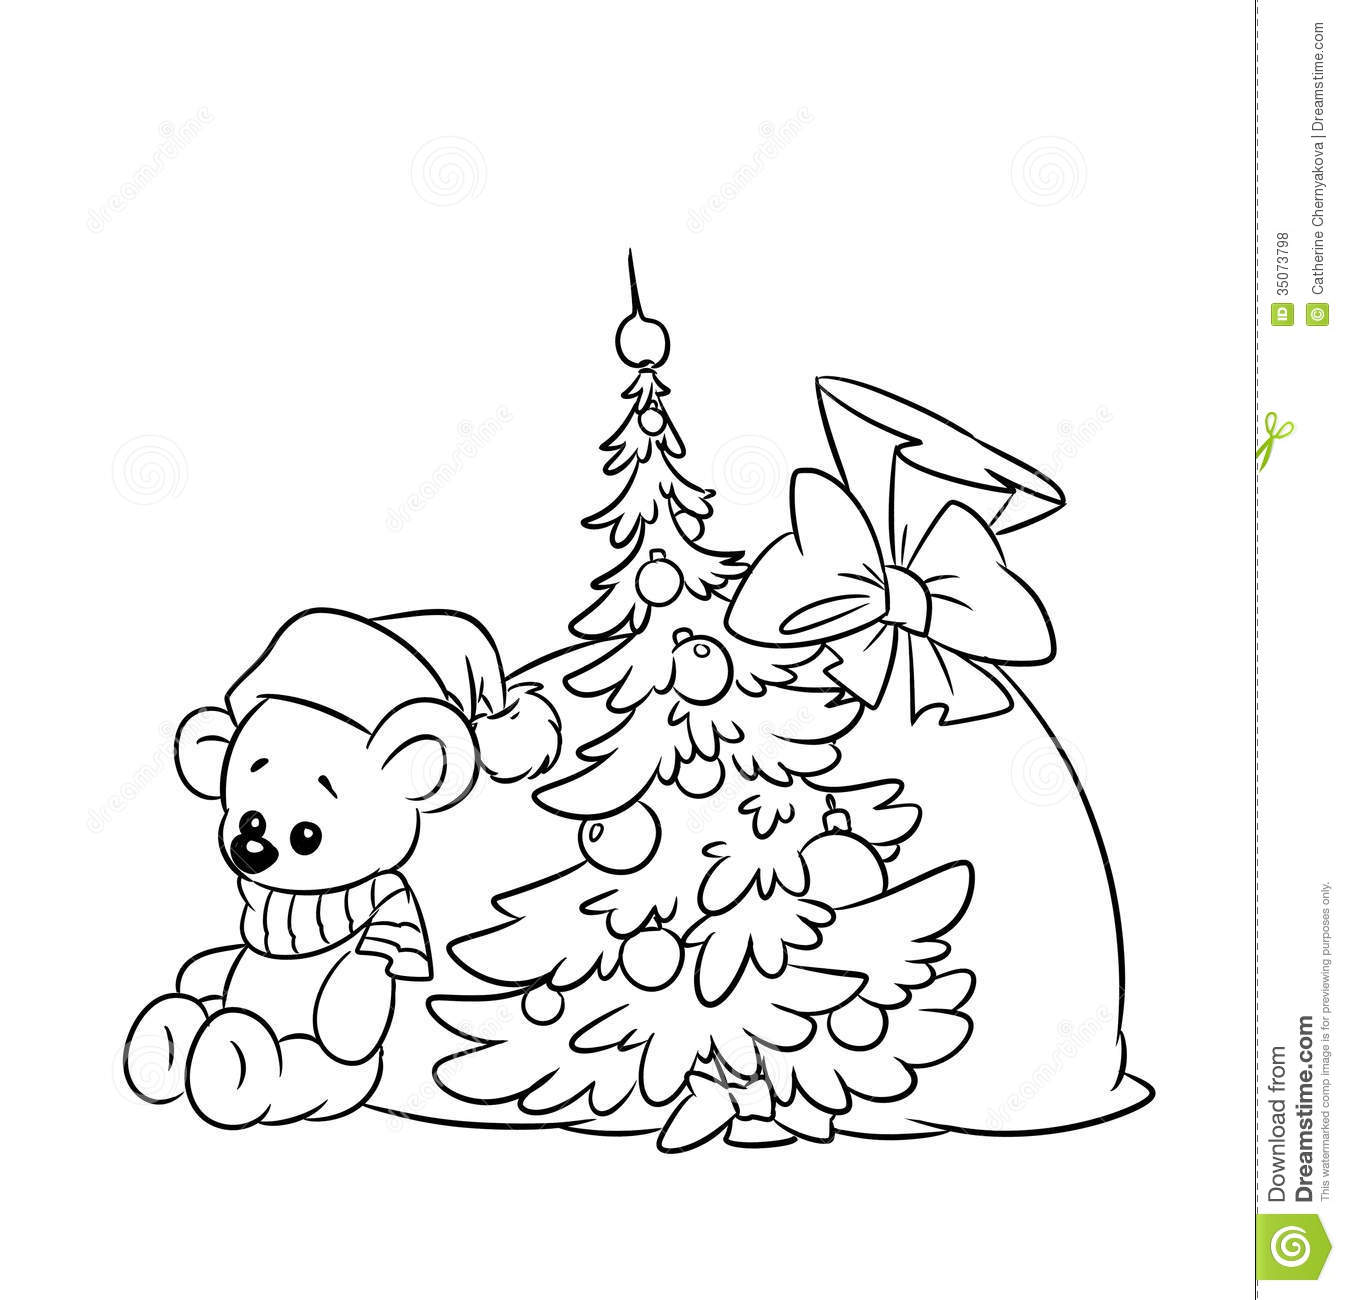 Coloring Pages Plush Teddy Christmas Stock Illustration